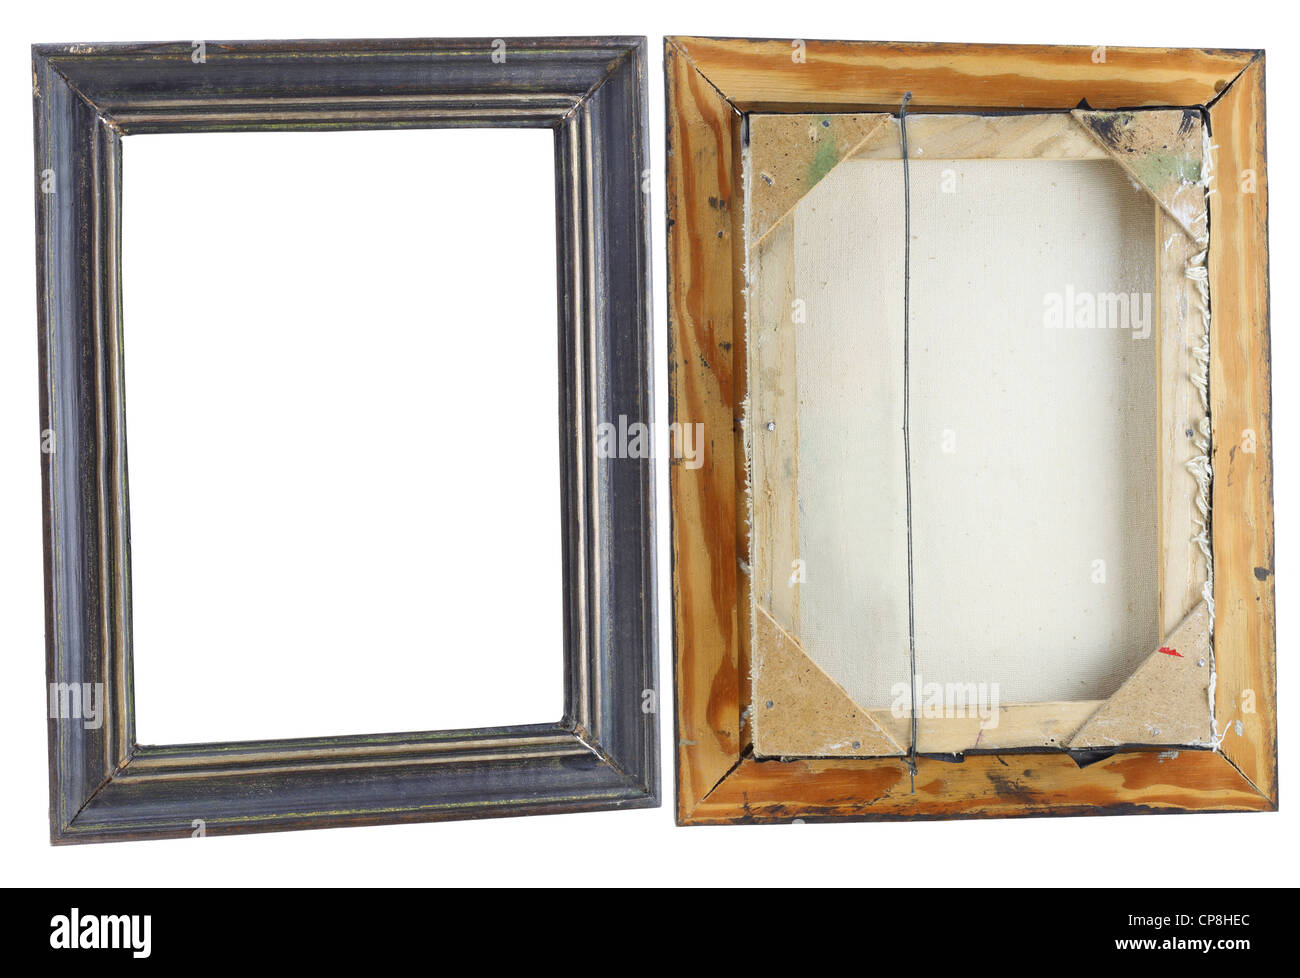 Old dirty curve frame for a picture, the front and back view. Isolated on white - Stock Image